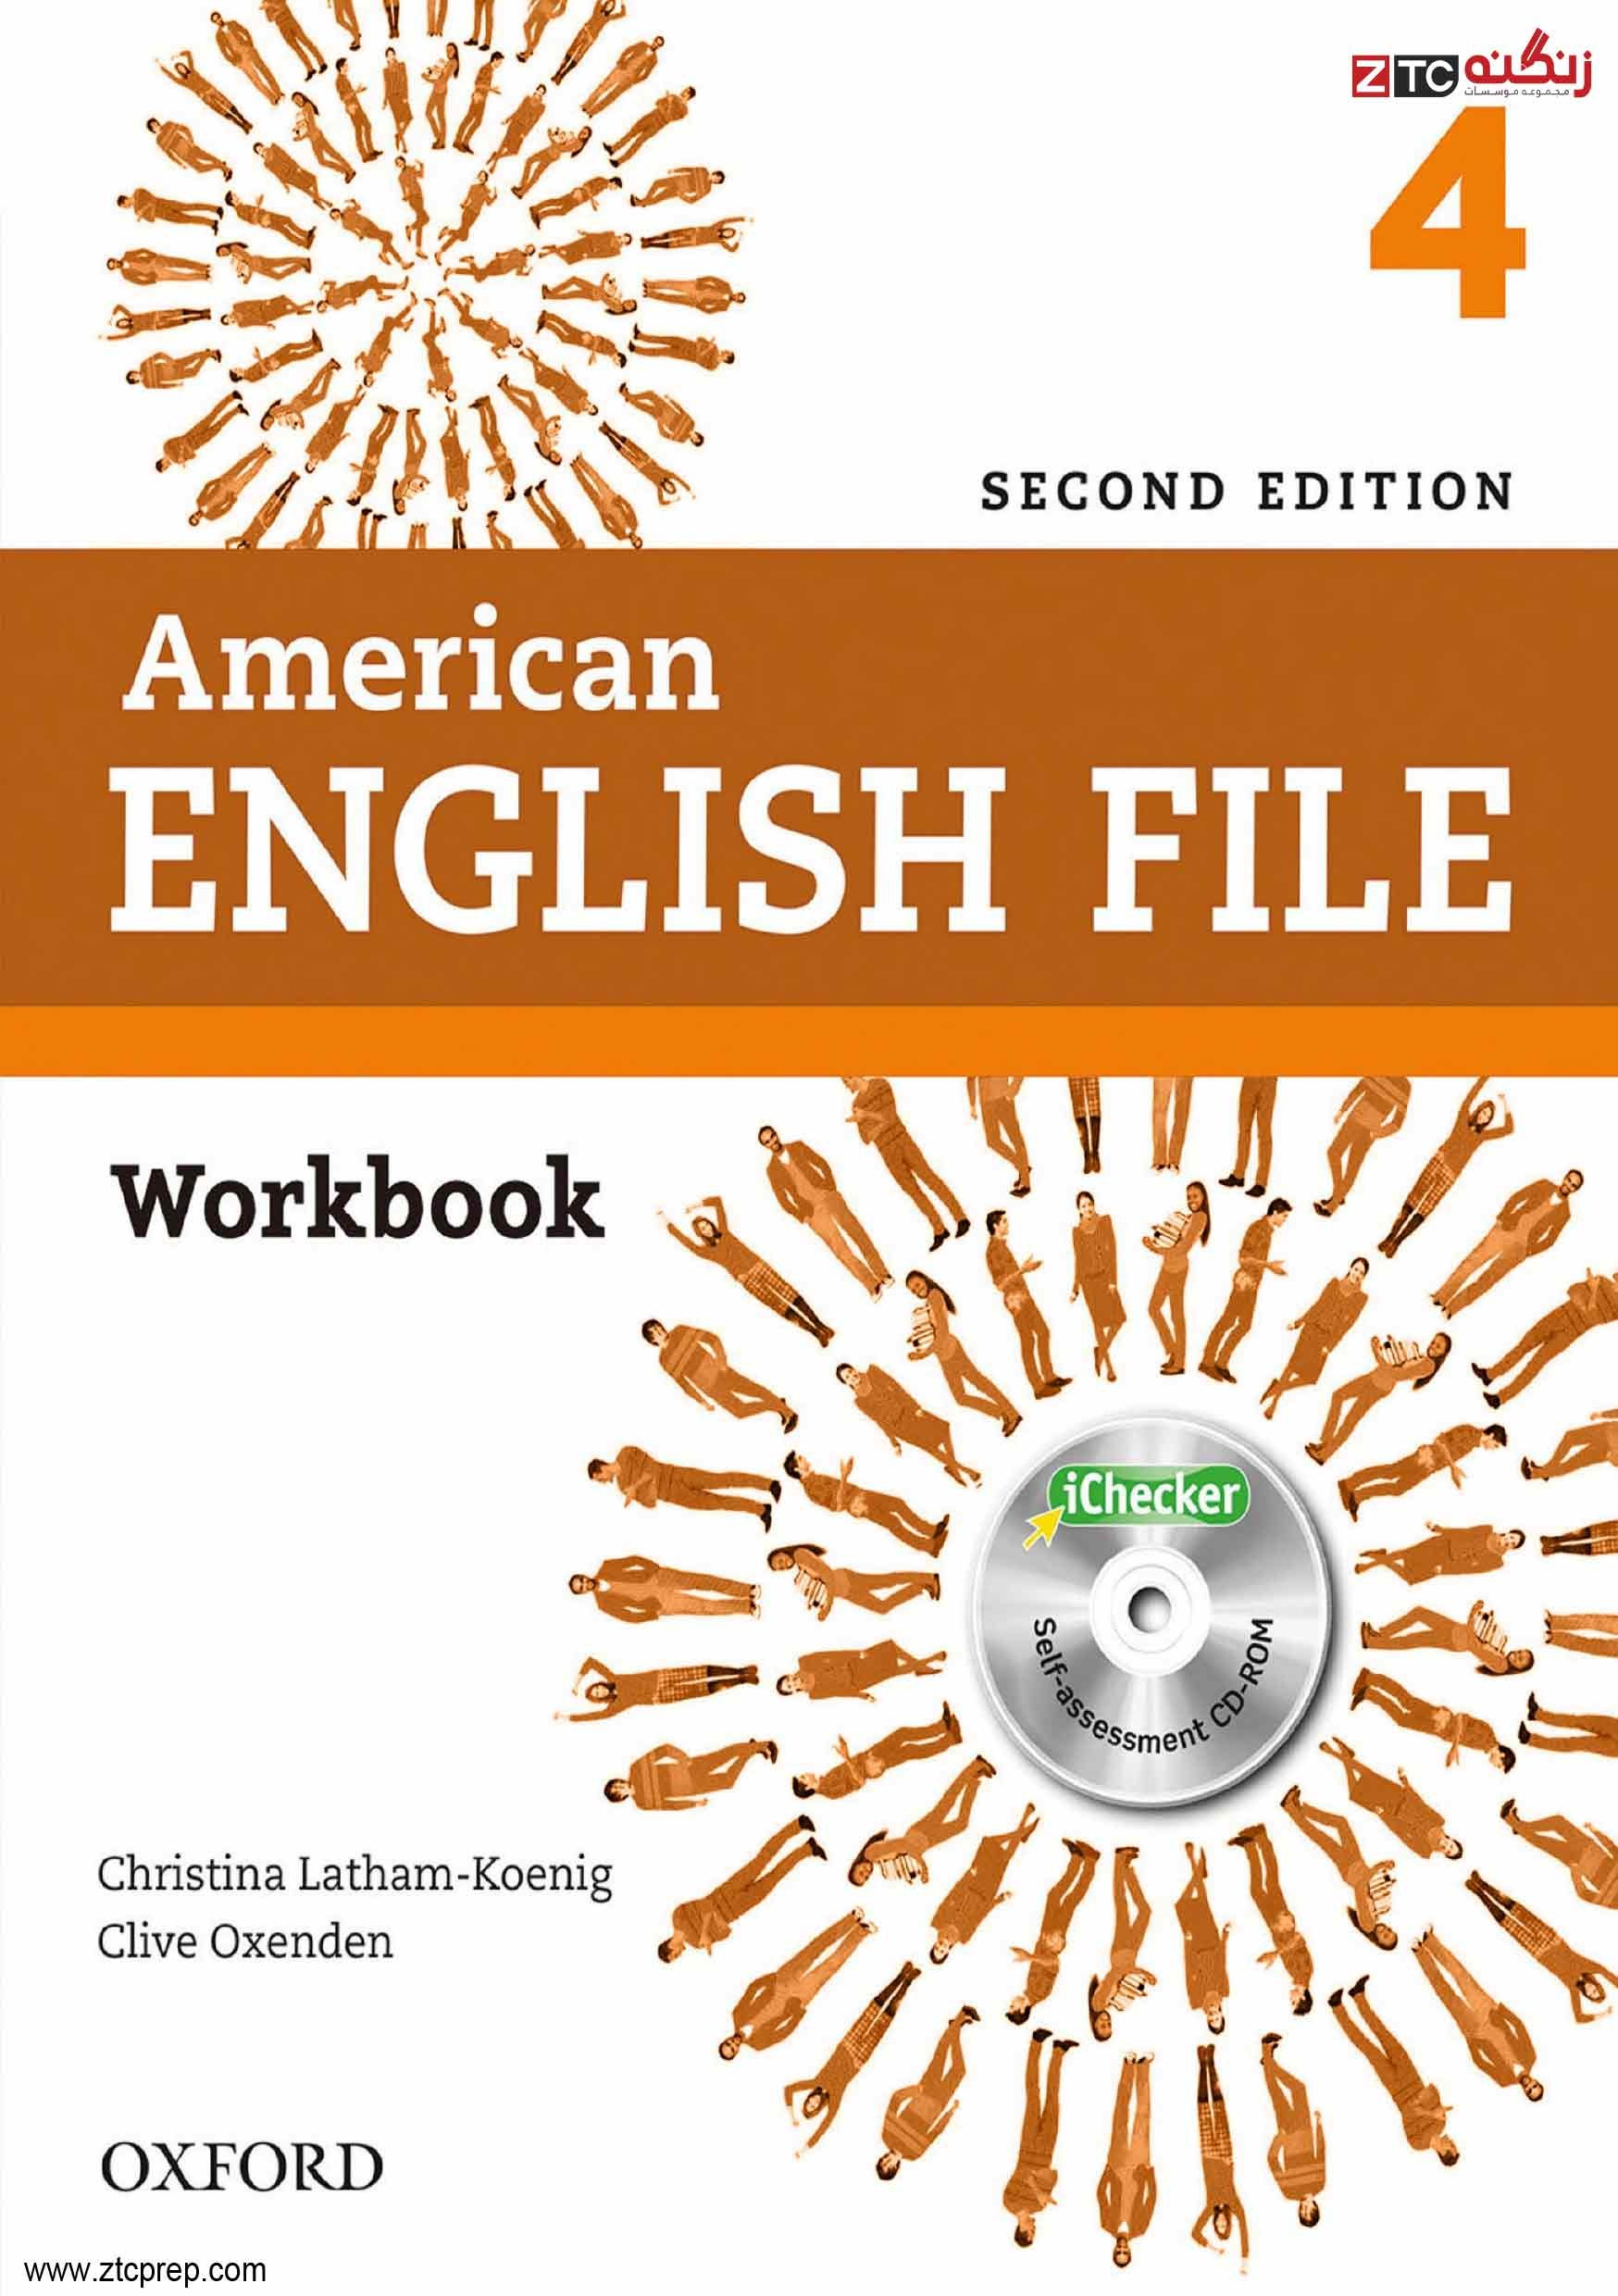 American English File 4 Work Book